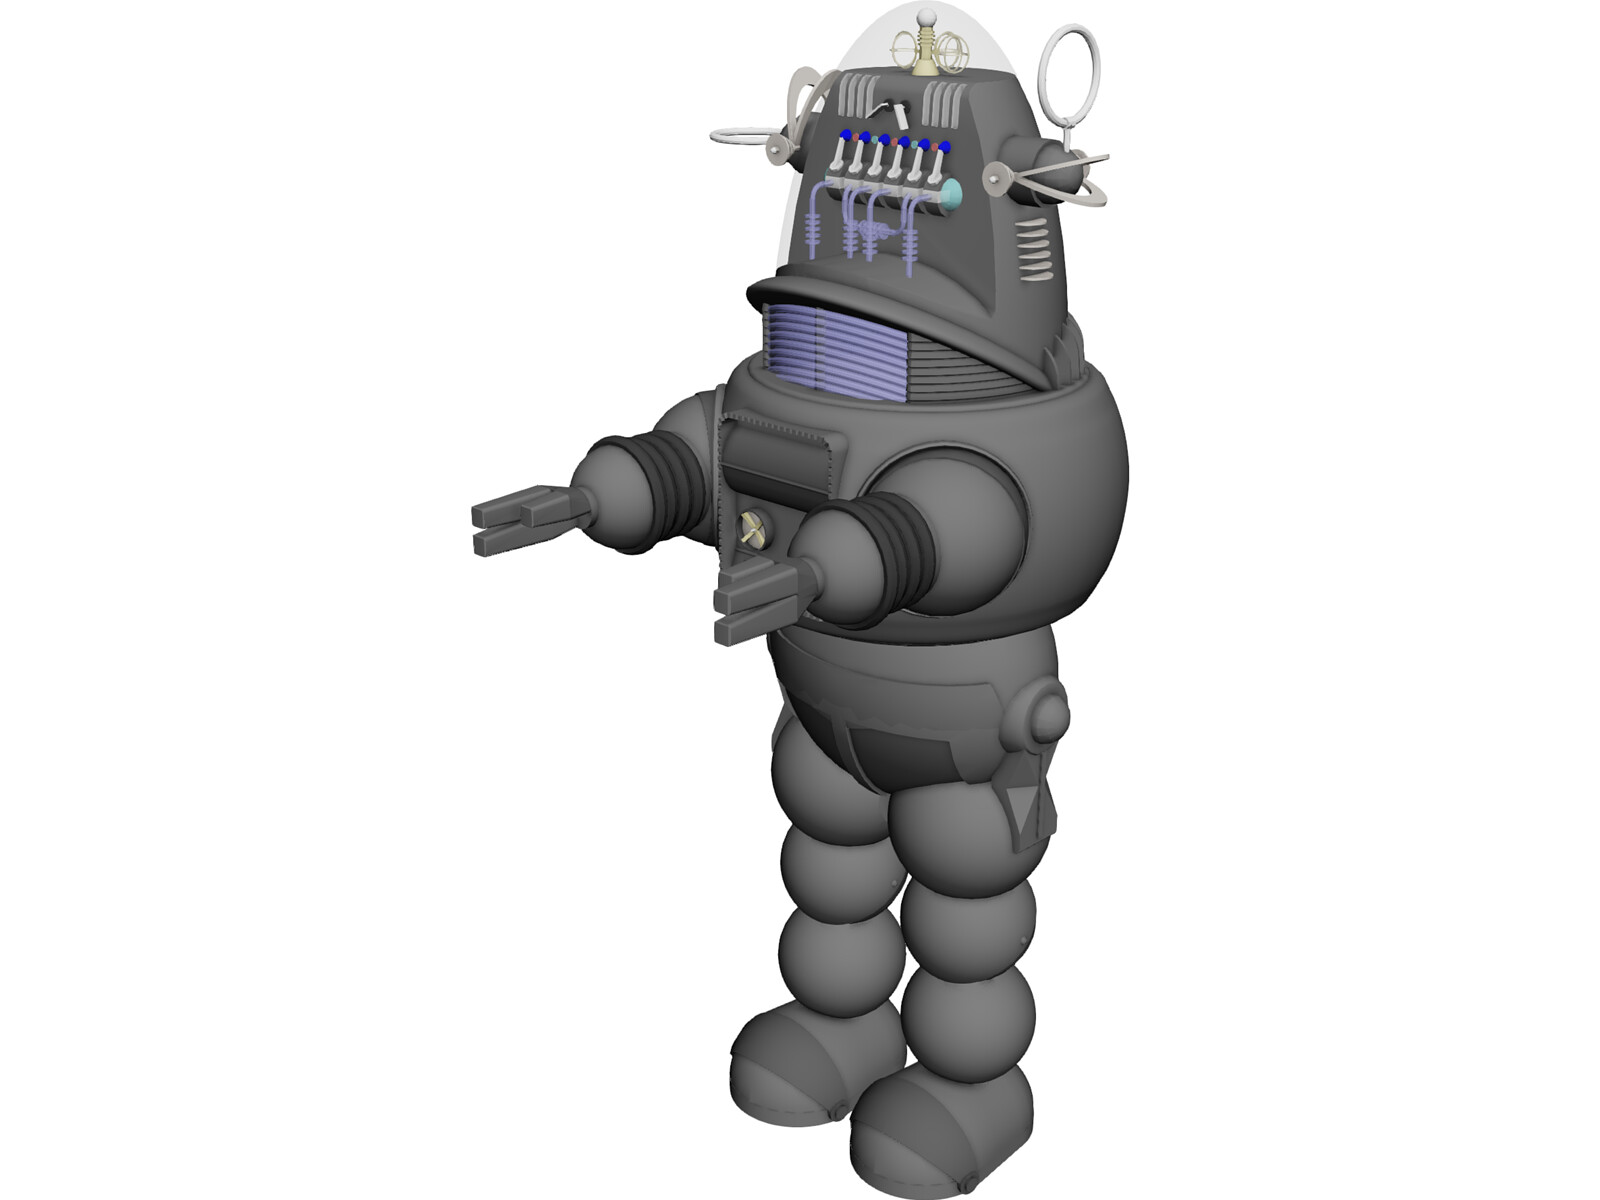 Robby the Robot 3D Model - 3D CAD Browser